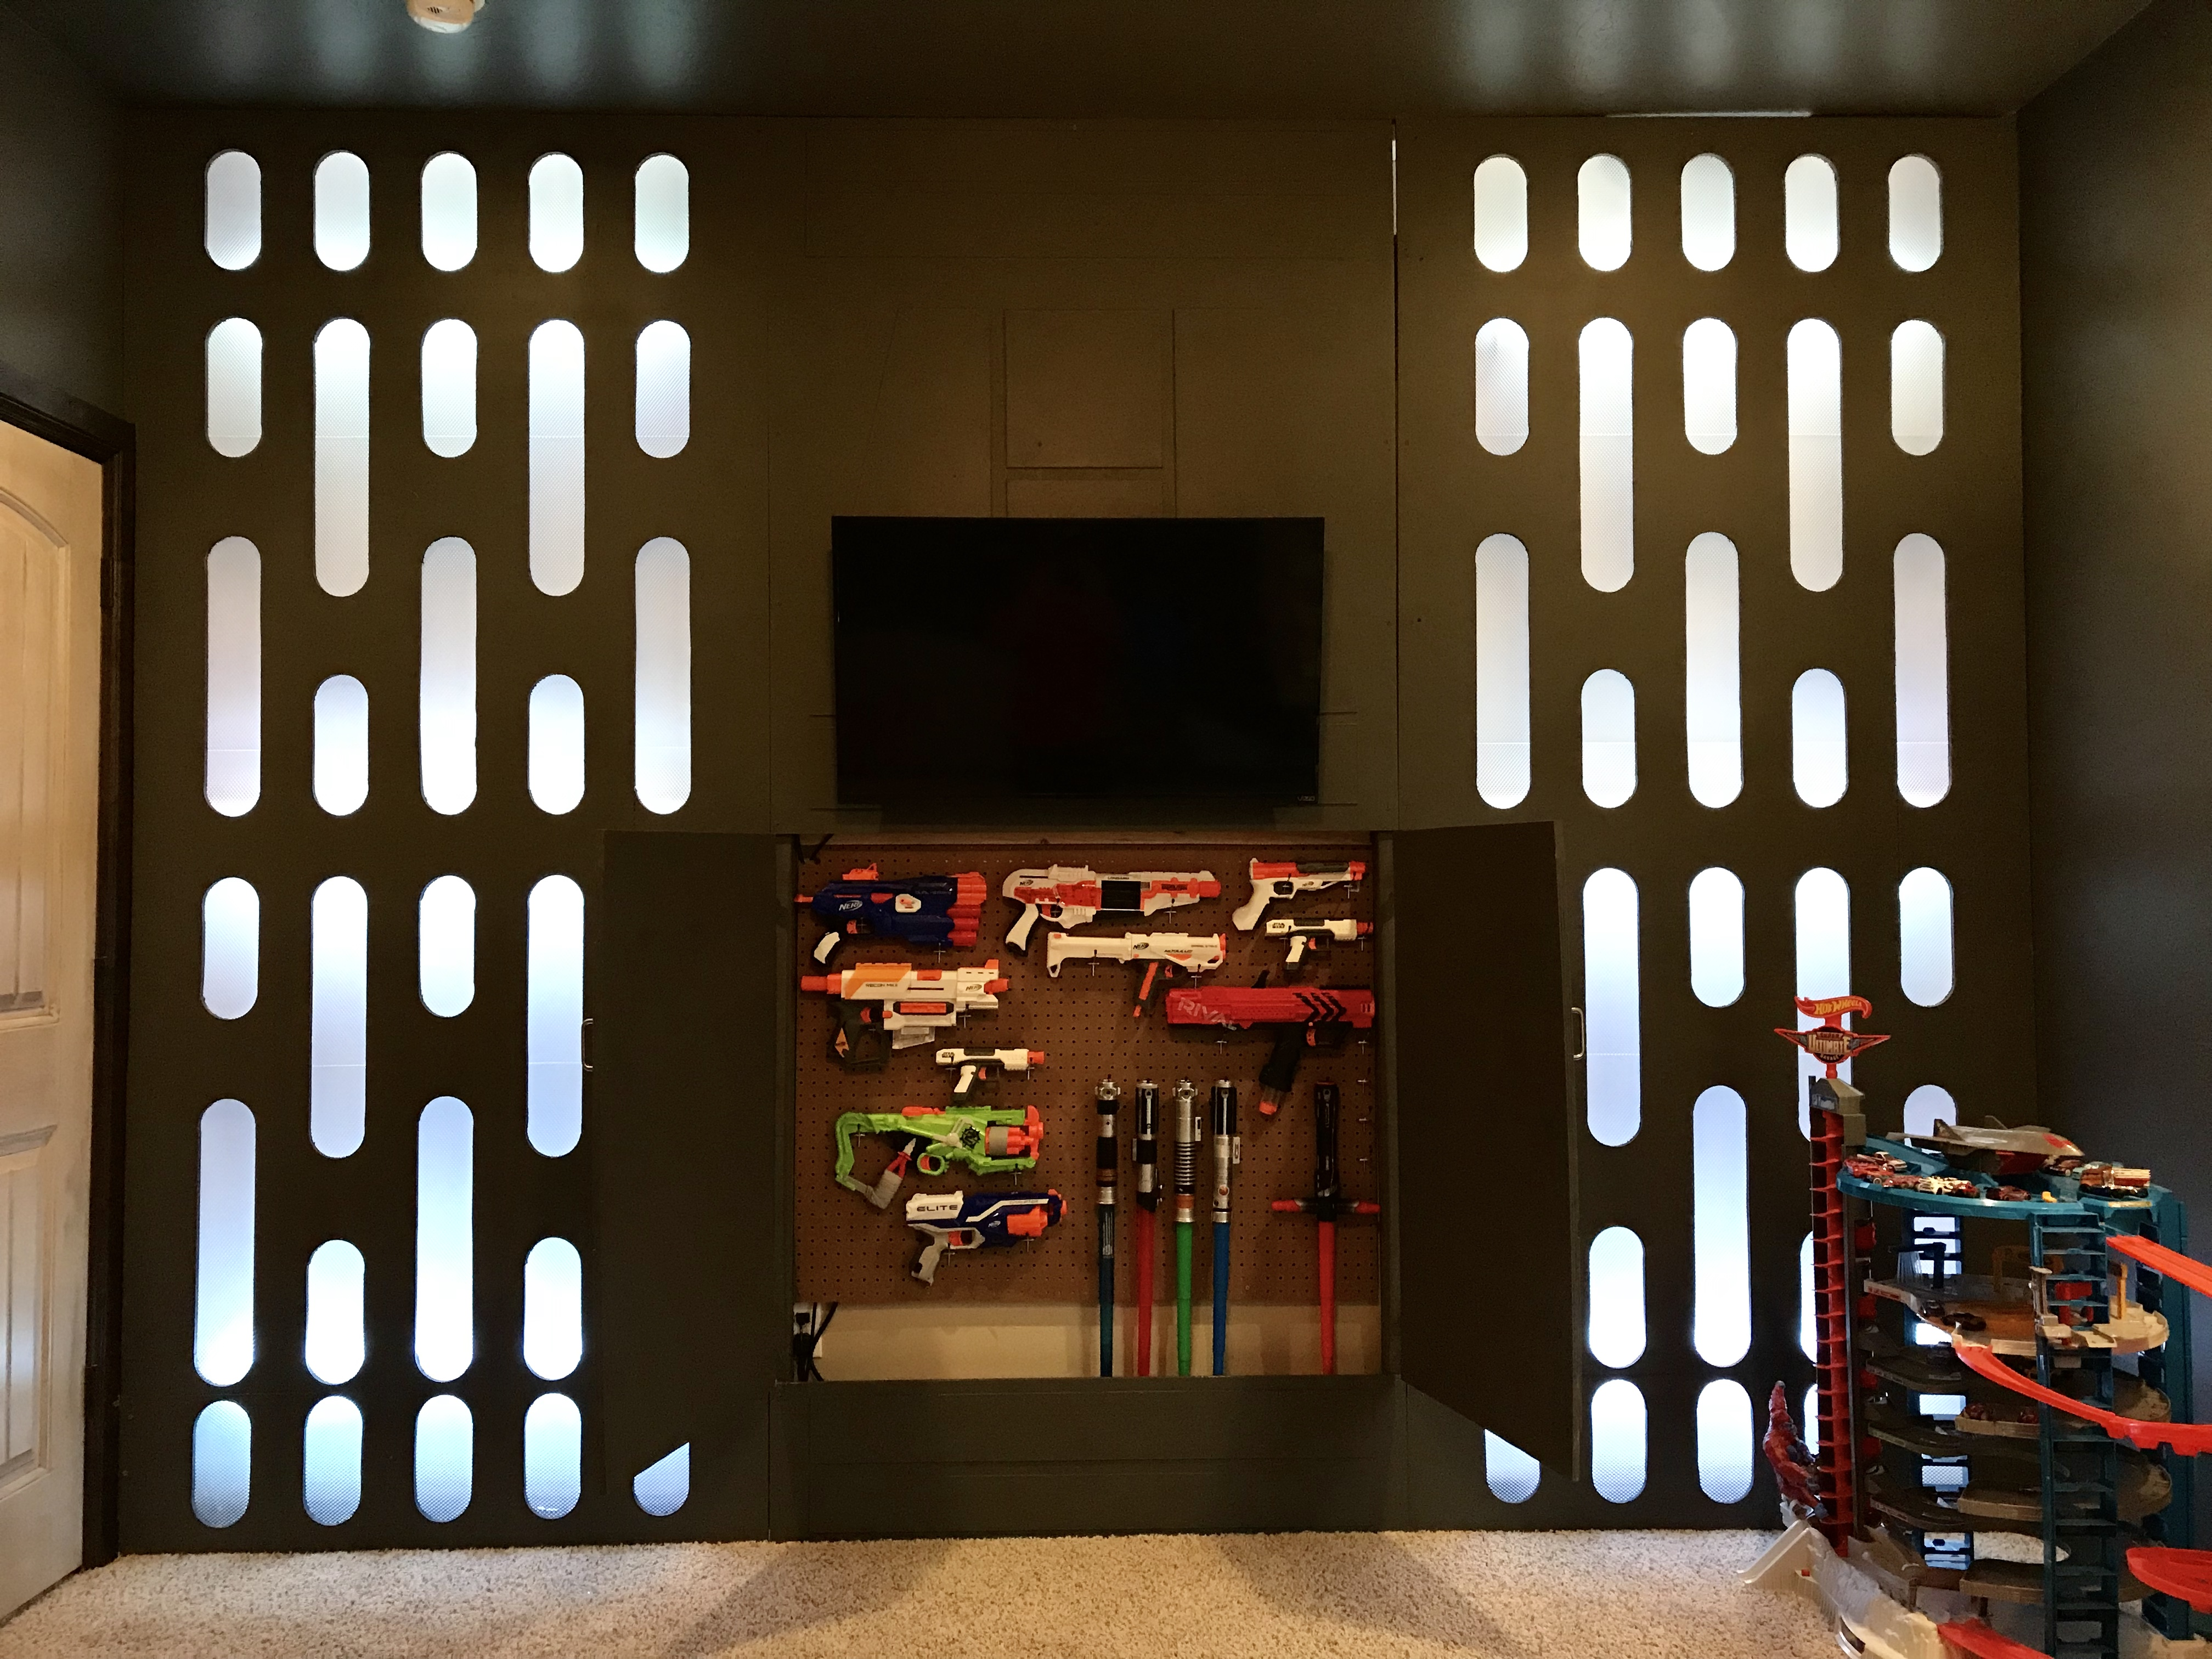 Star Wars Bedroom With NERF Guns